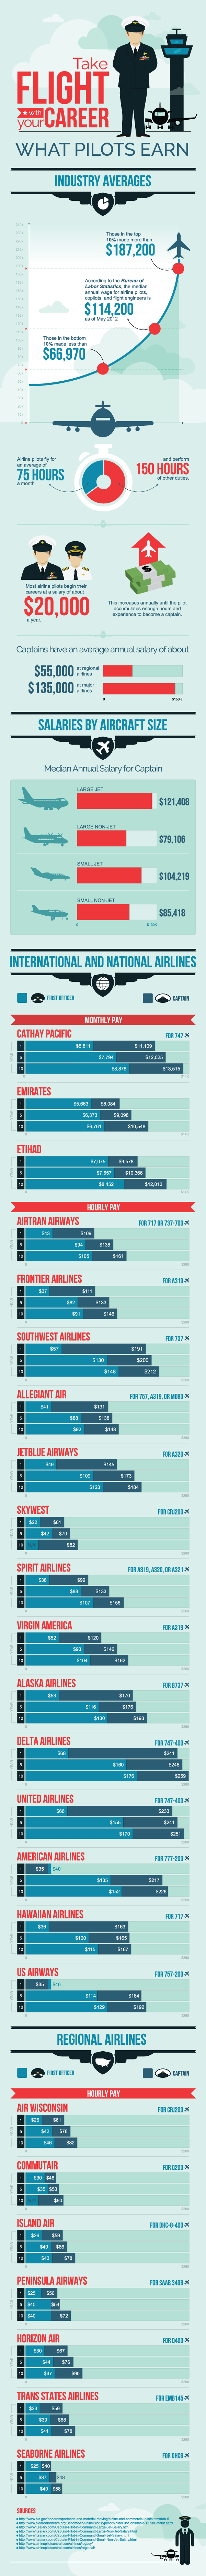 Phoenix East Aviation | Airline Pilot Salary